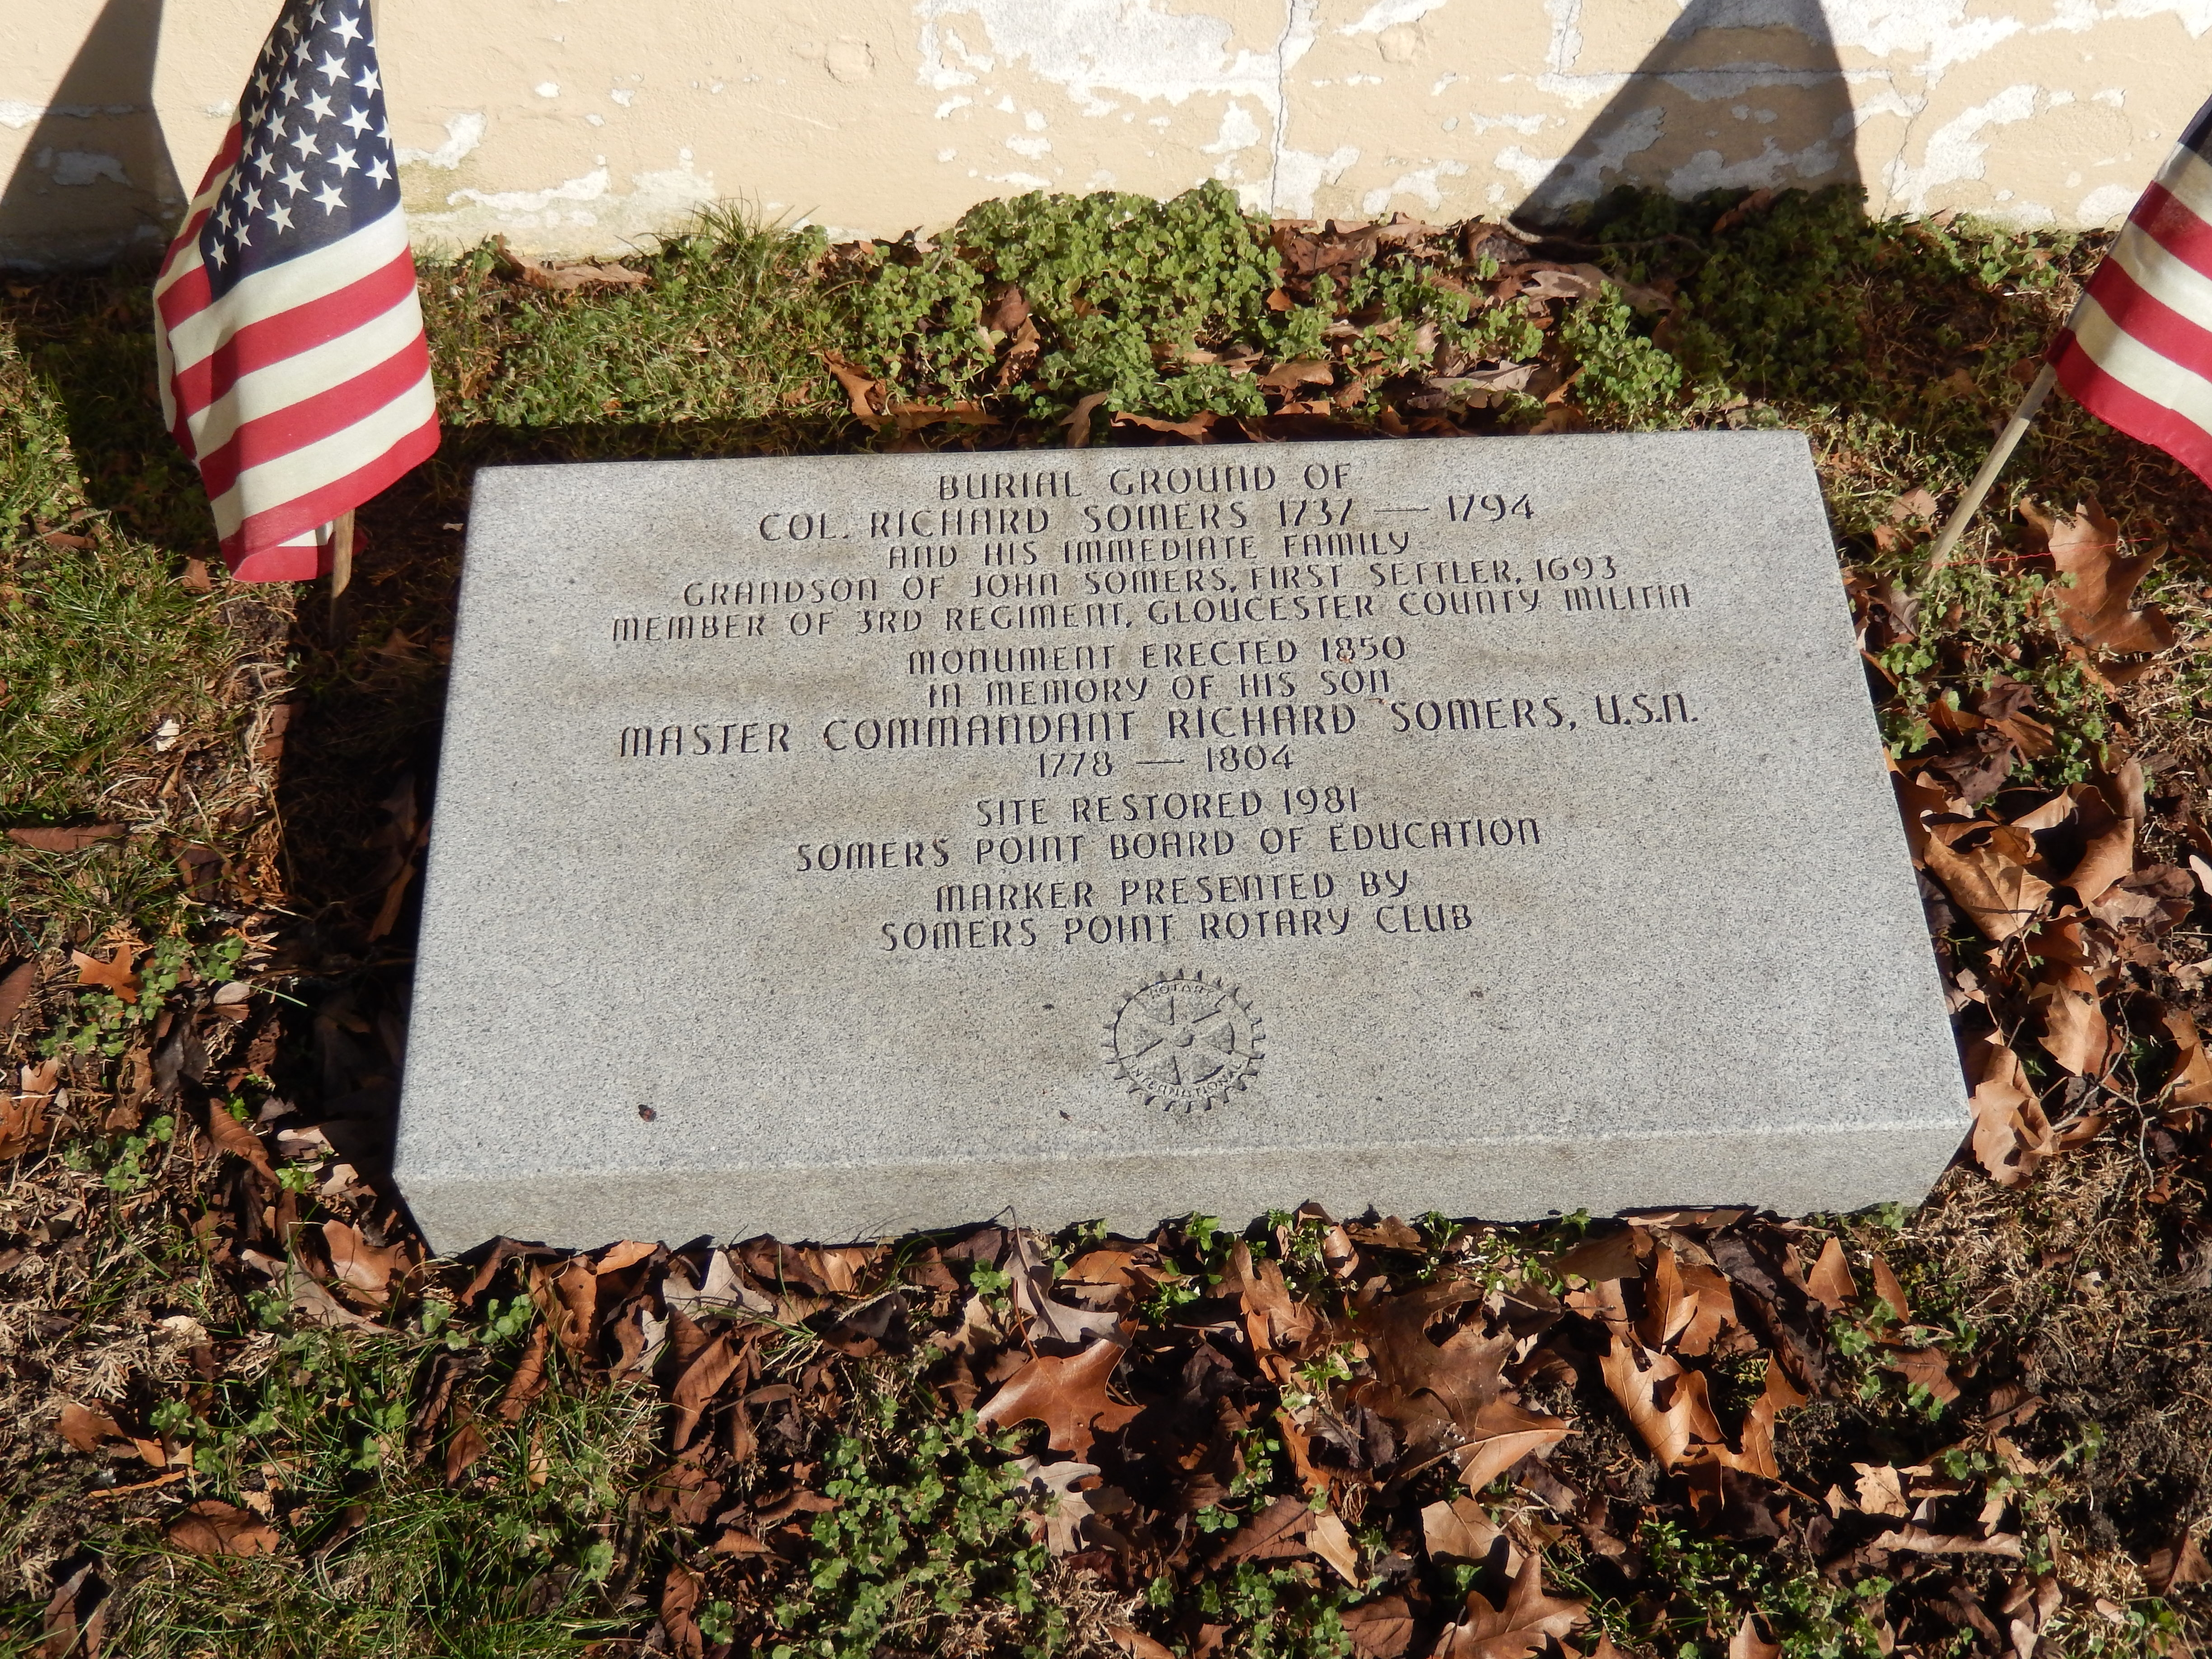 Burial ground of Col. Richard Somers Marker